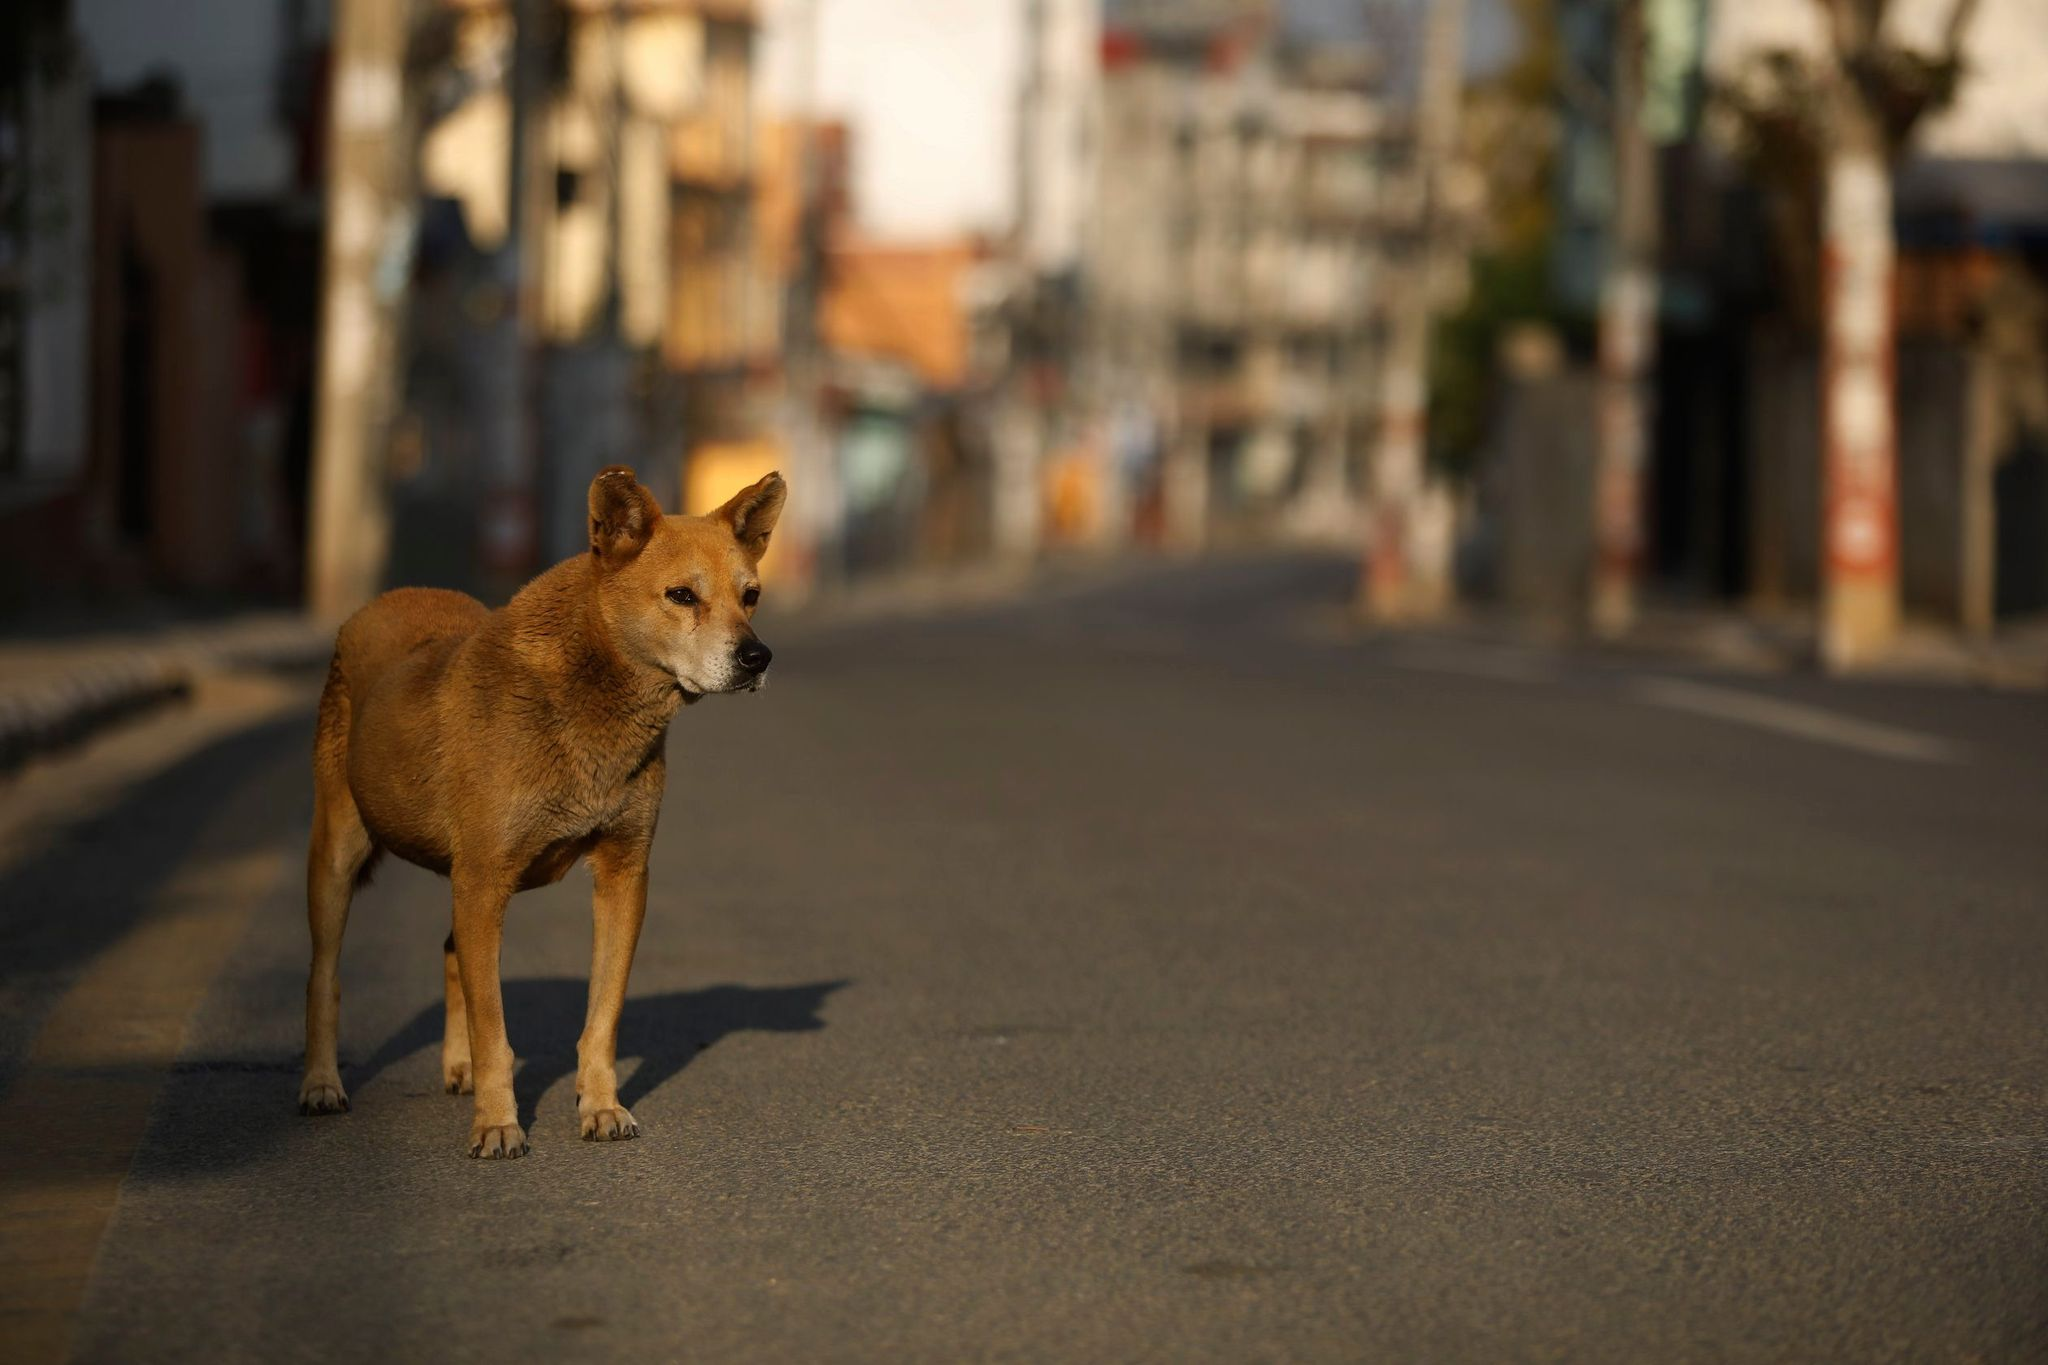 Dog bites man is still news in Nepal